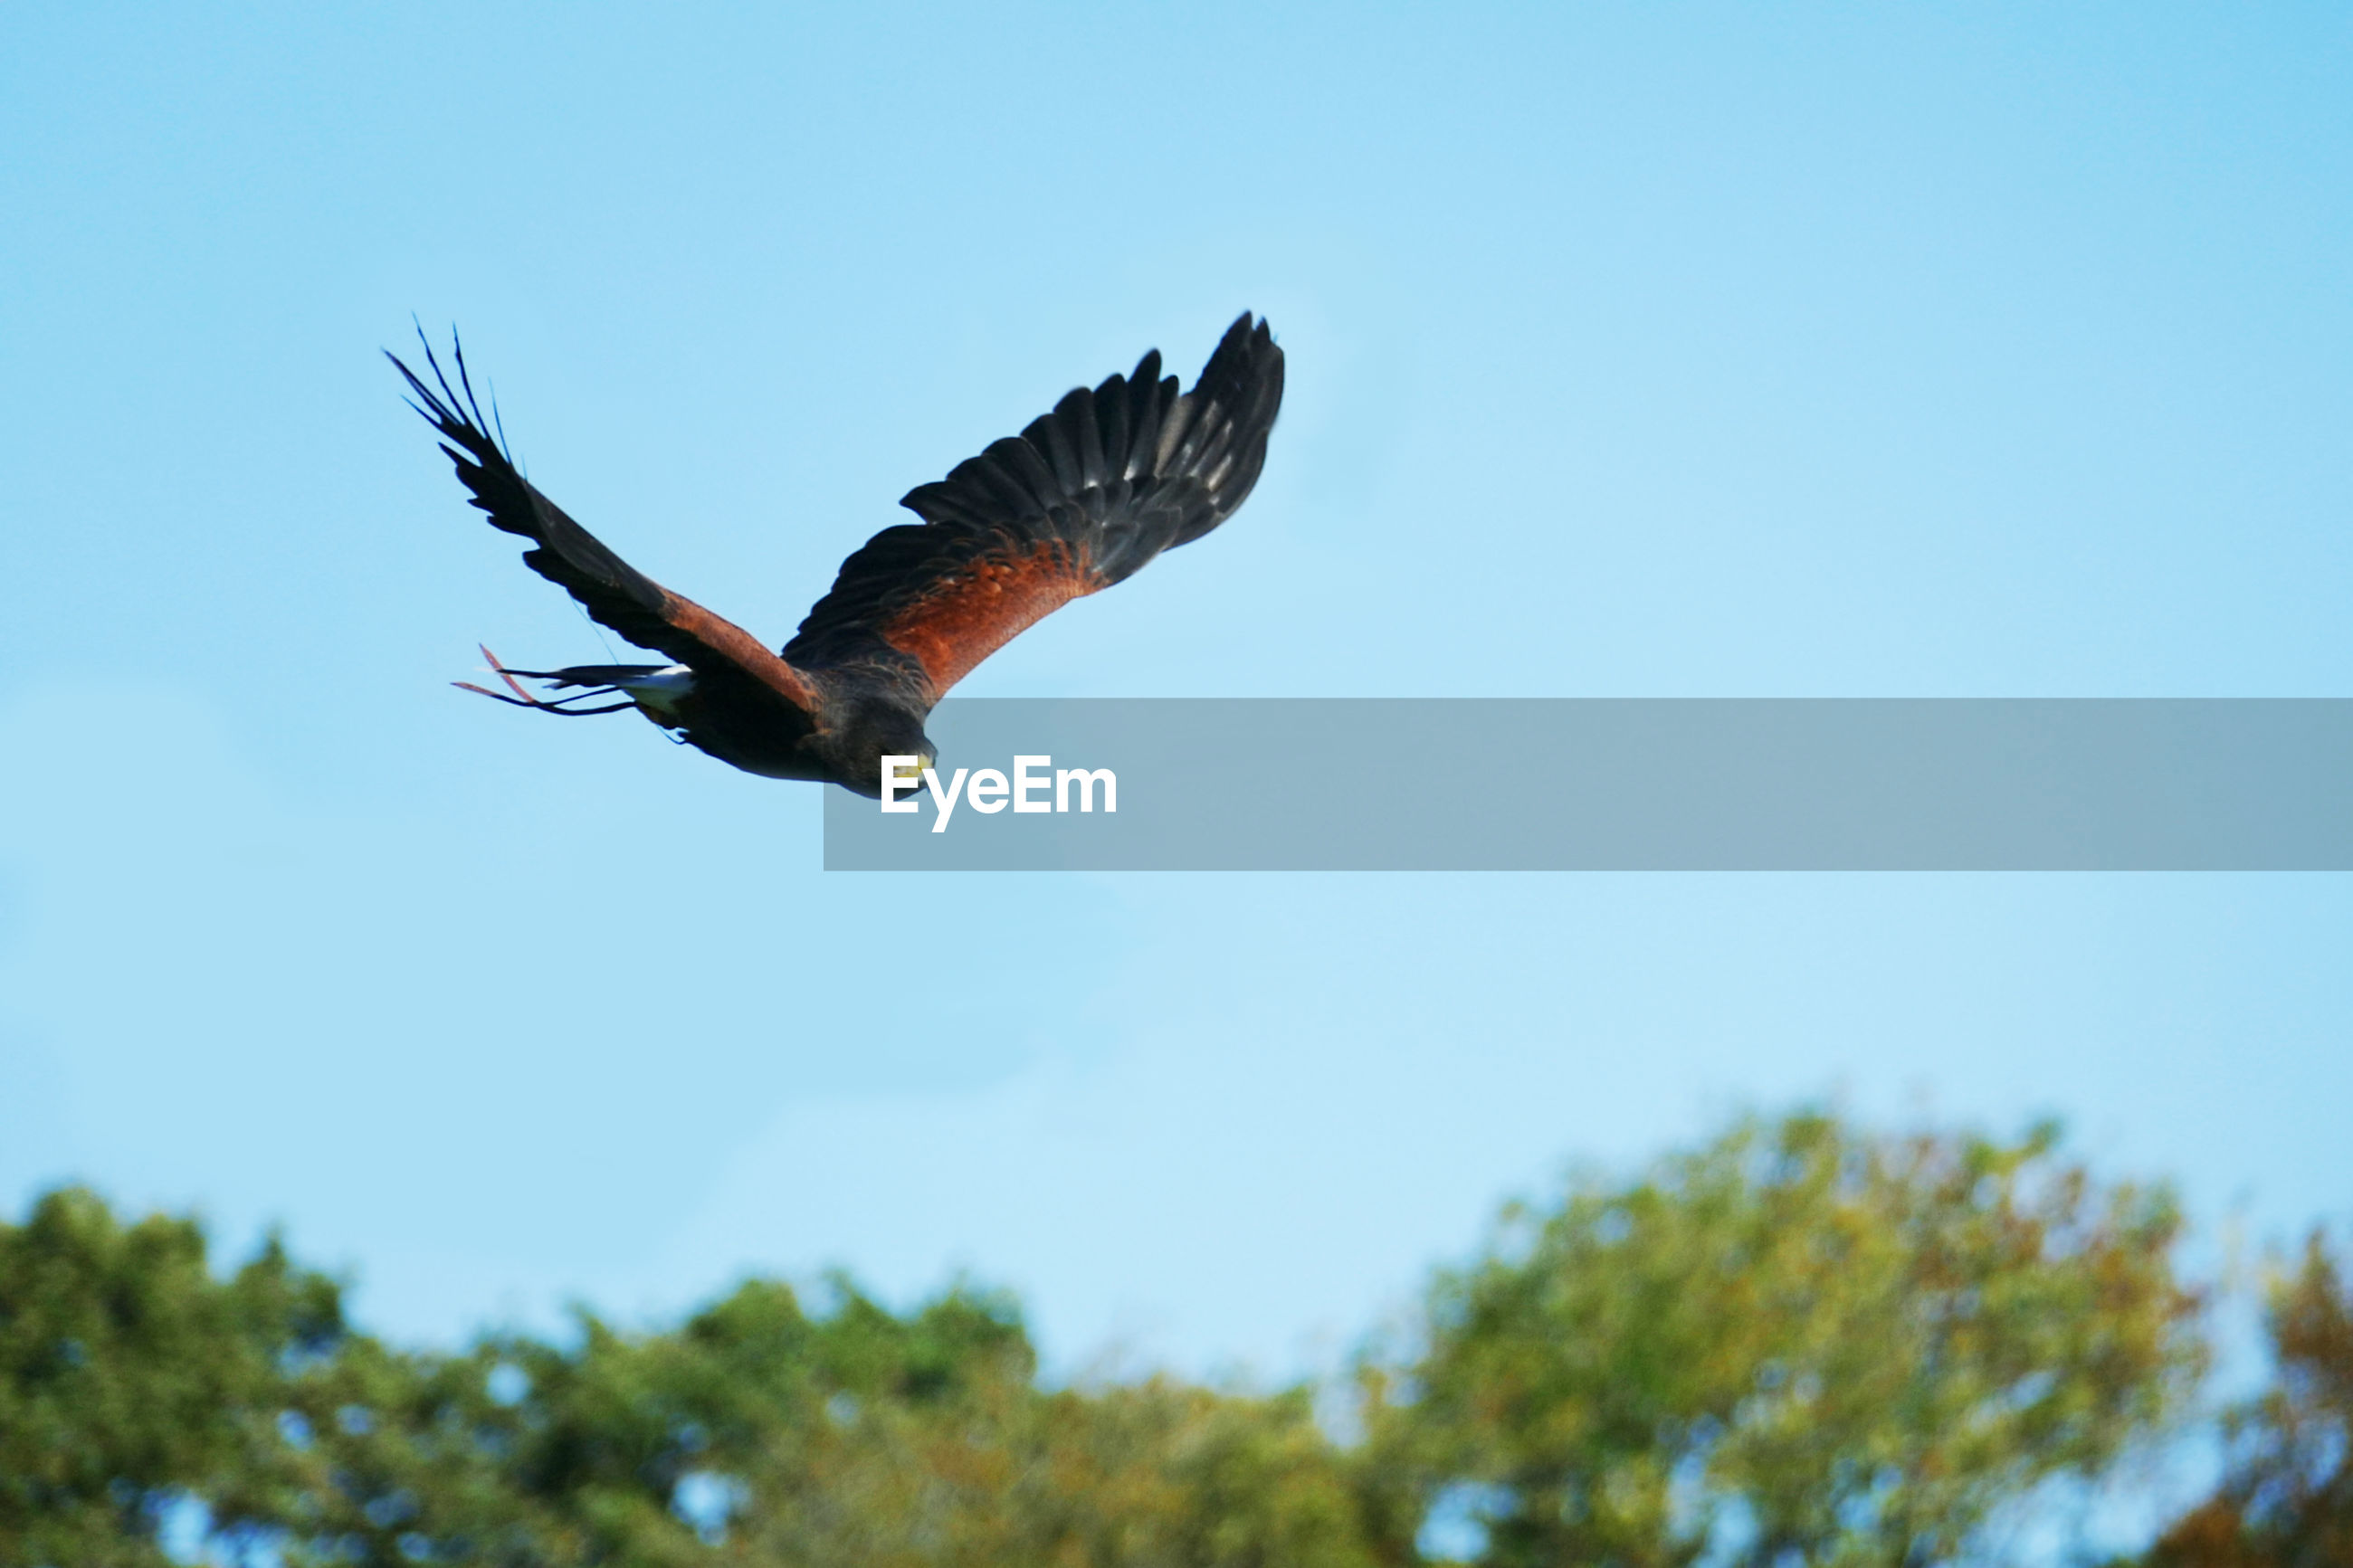 Low angle view of eagle kestrel flying against clear blue sky